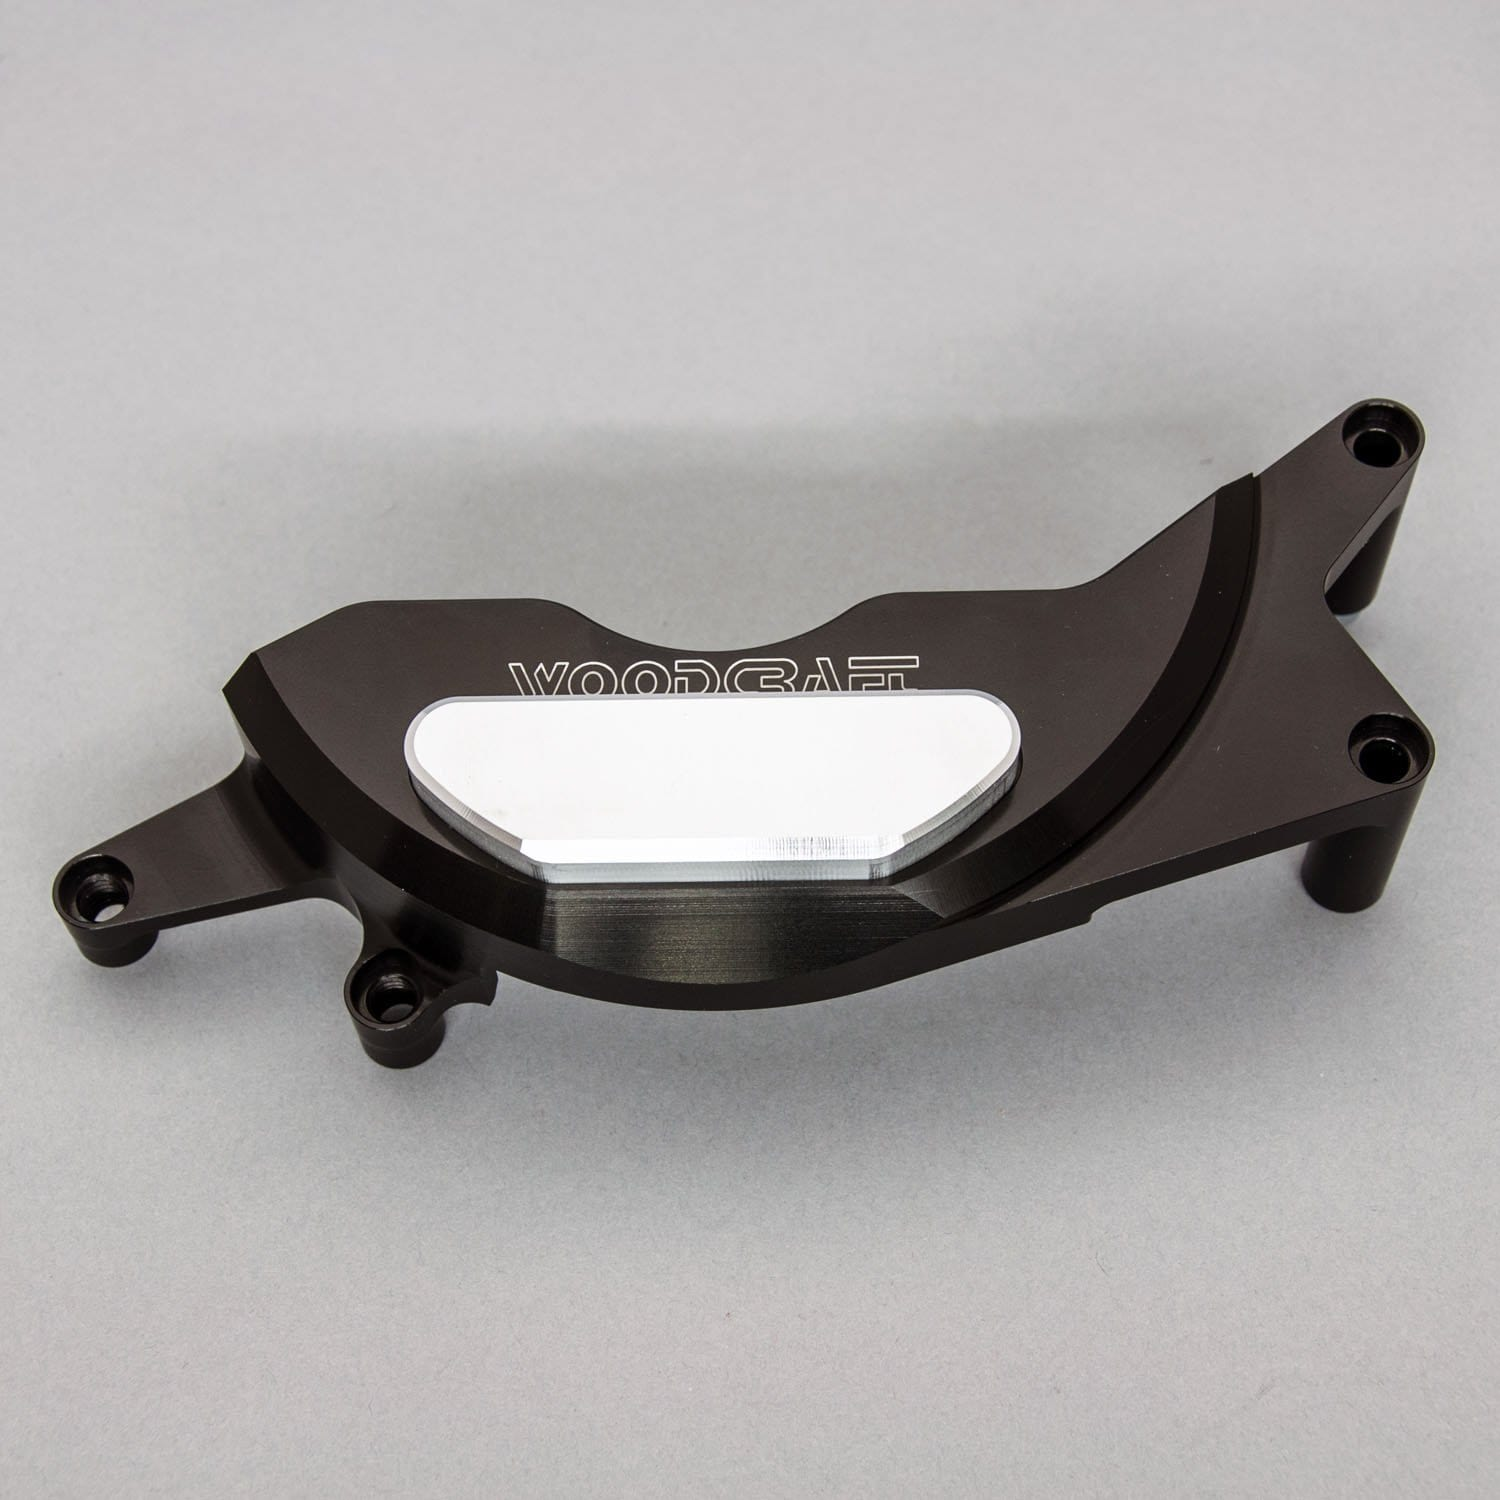 60-0144LC Kawasaki Ninja 400 LHS Stator Cover Protector Assembly - Woodcraft Technologies - Motorcycle Parts